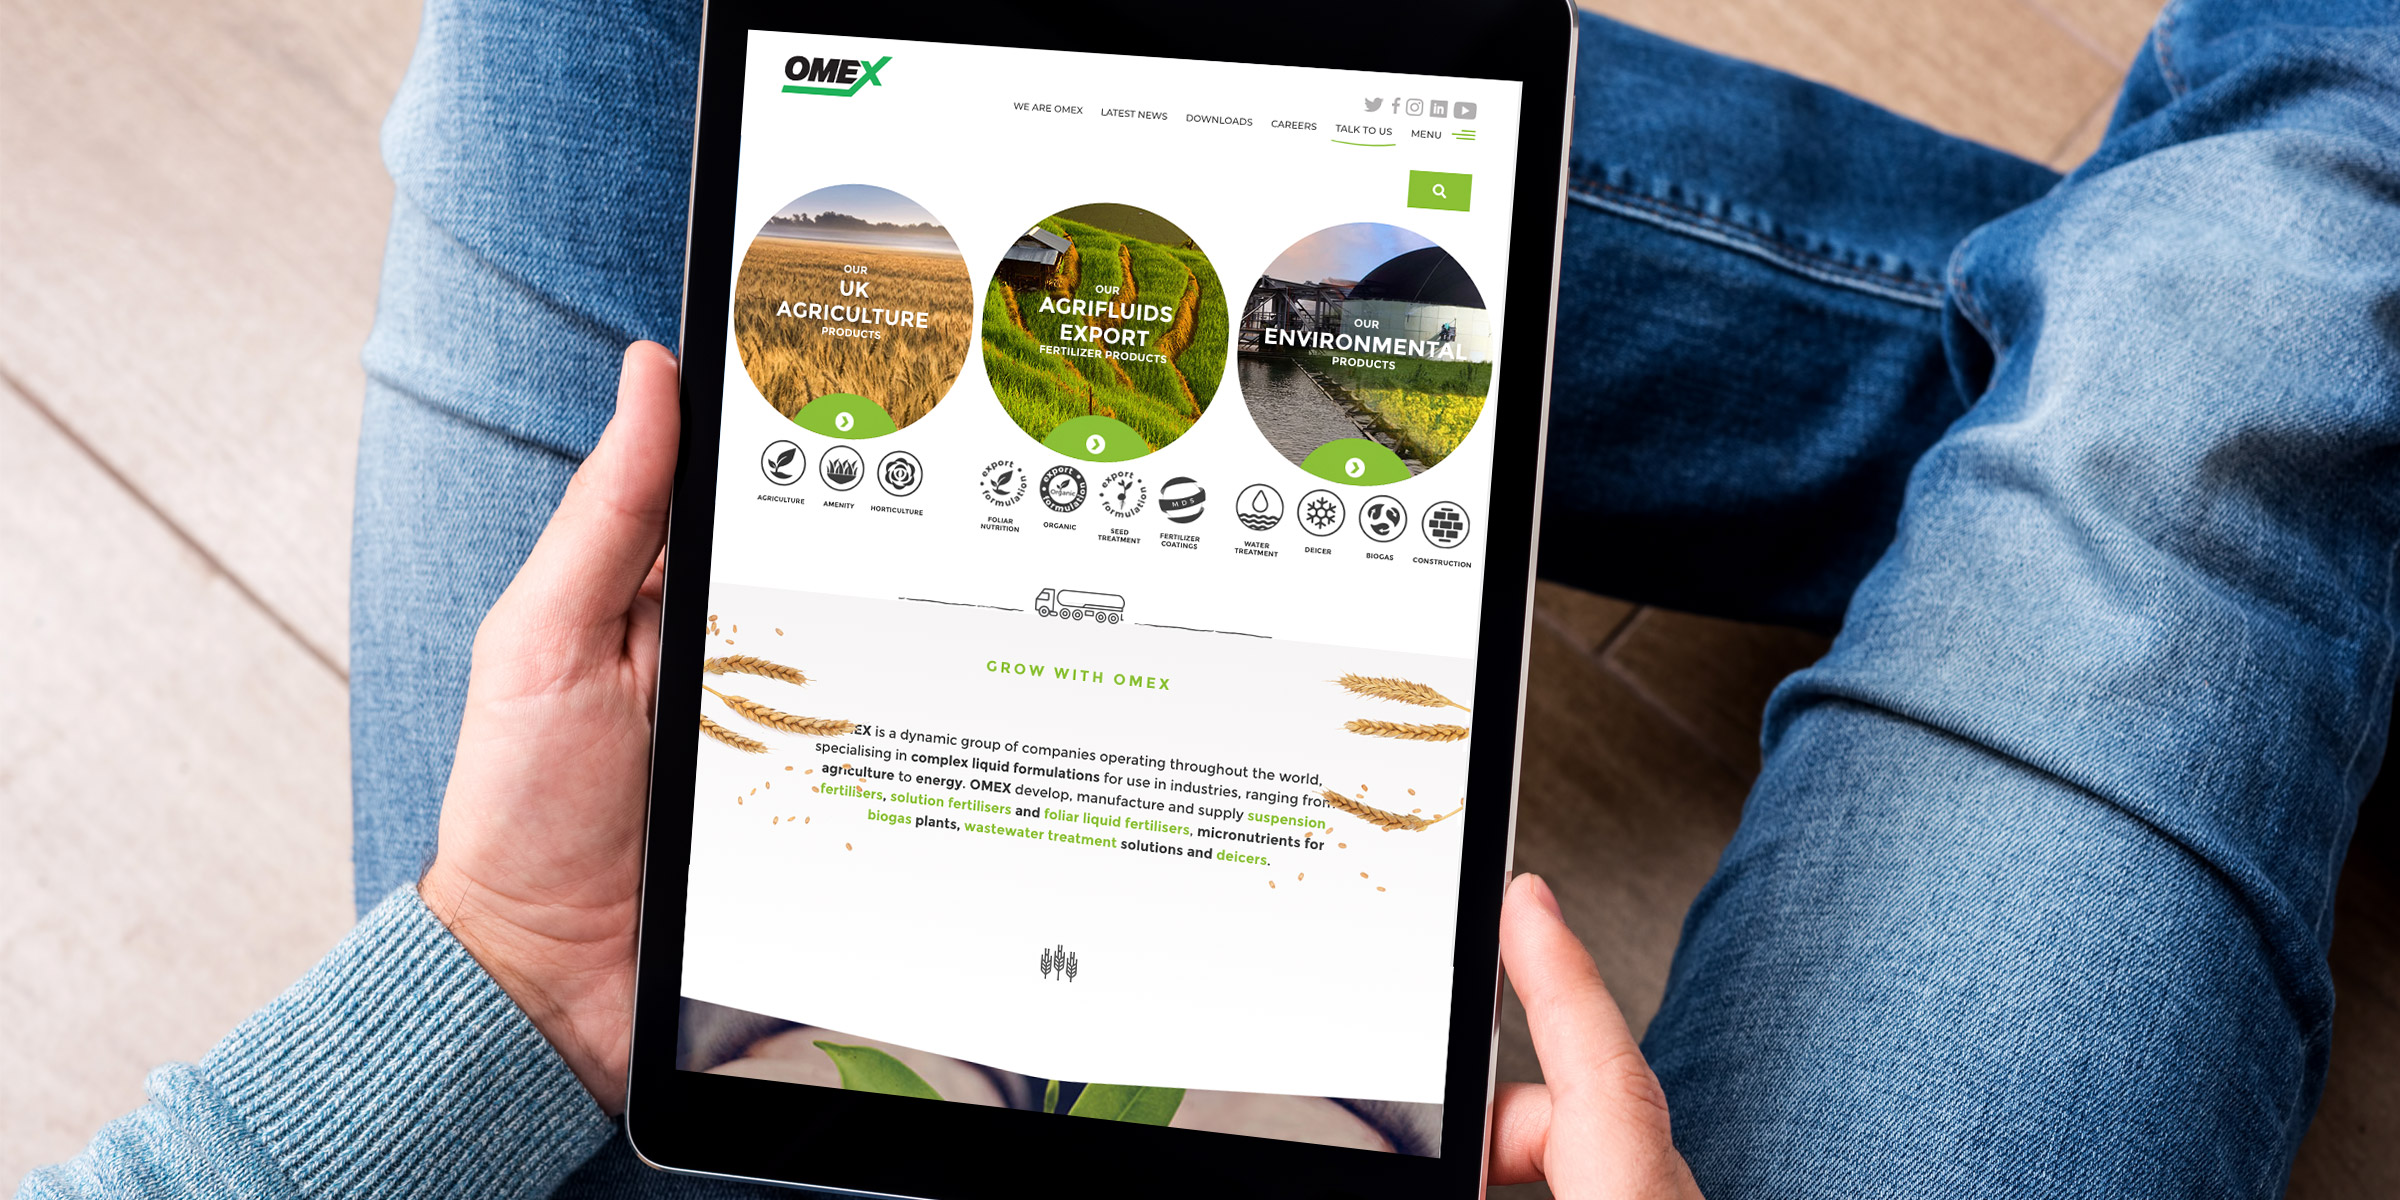 OMEX website design